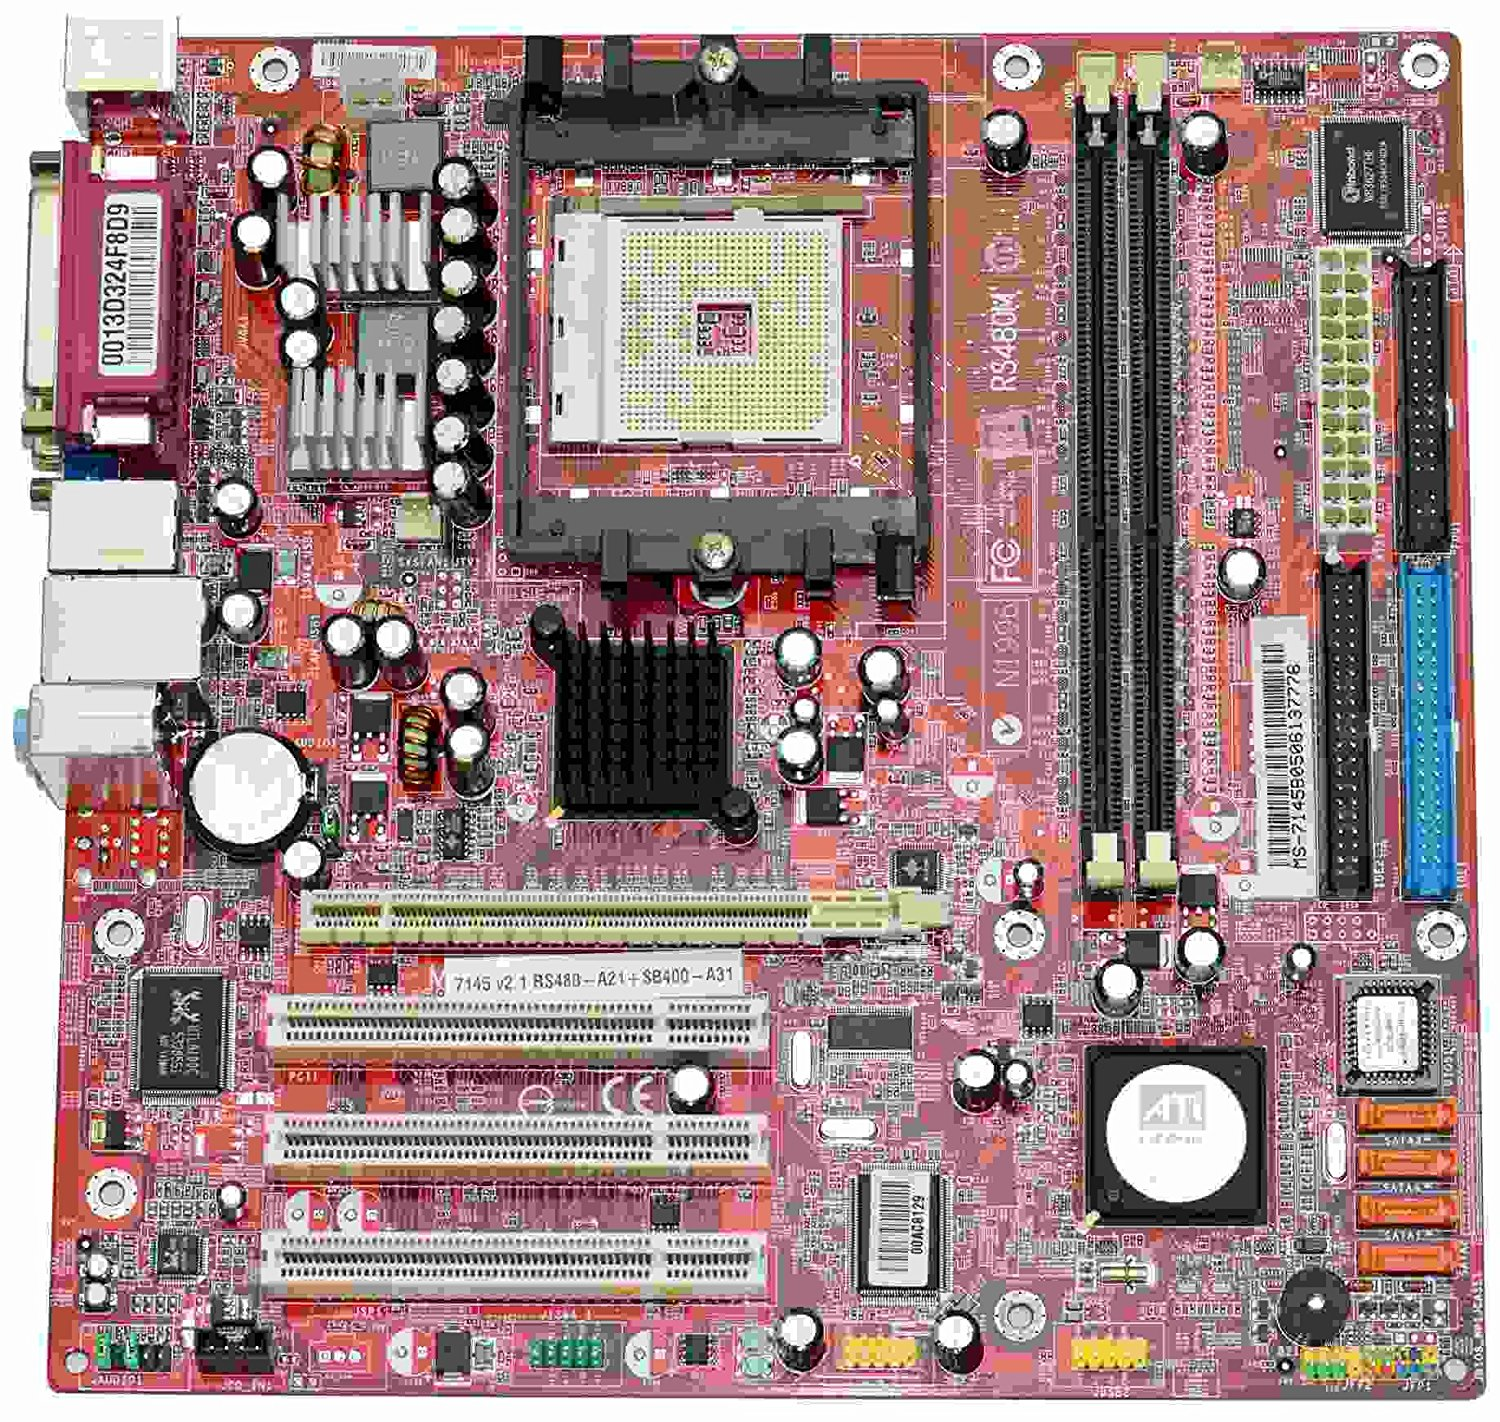 Cheap Emachines Pc, find Emachines Pc deals on line at Alibaba.com on emachines el1850, emachines desktop computers, emachines w3050, emachines et1831, emachines el1333g, emachines el1300g, emachines t3508 specs, emachines monitor, emachines t5048 drivers,